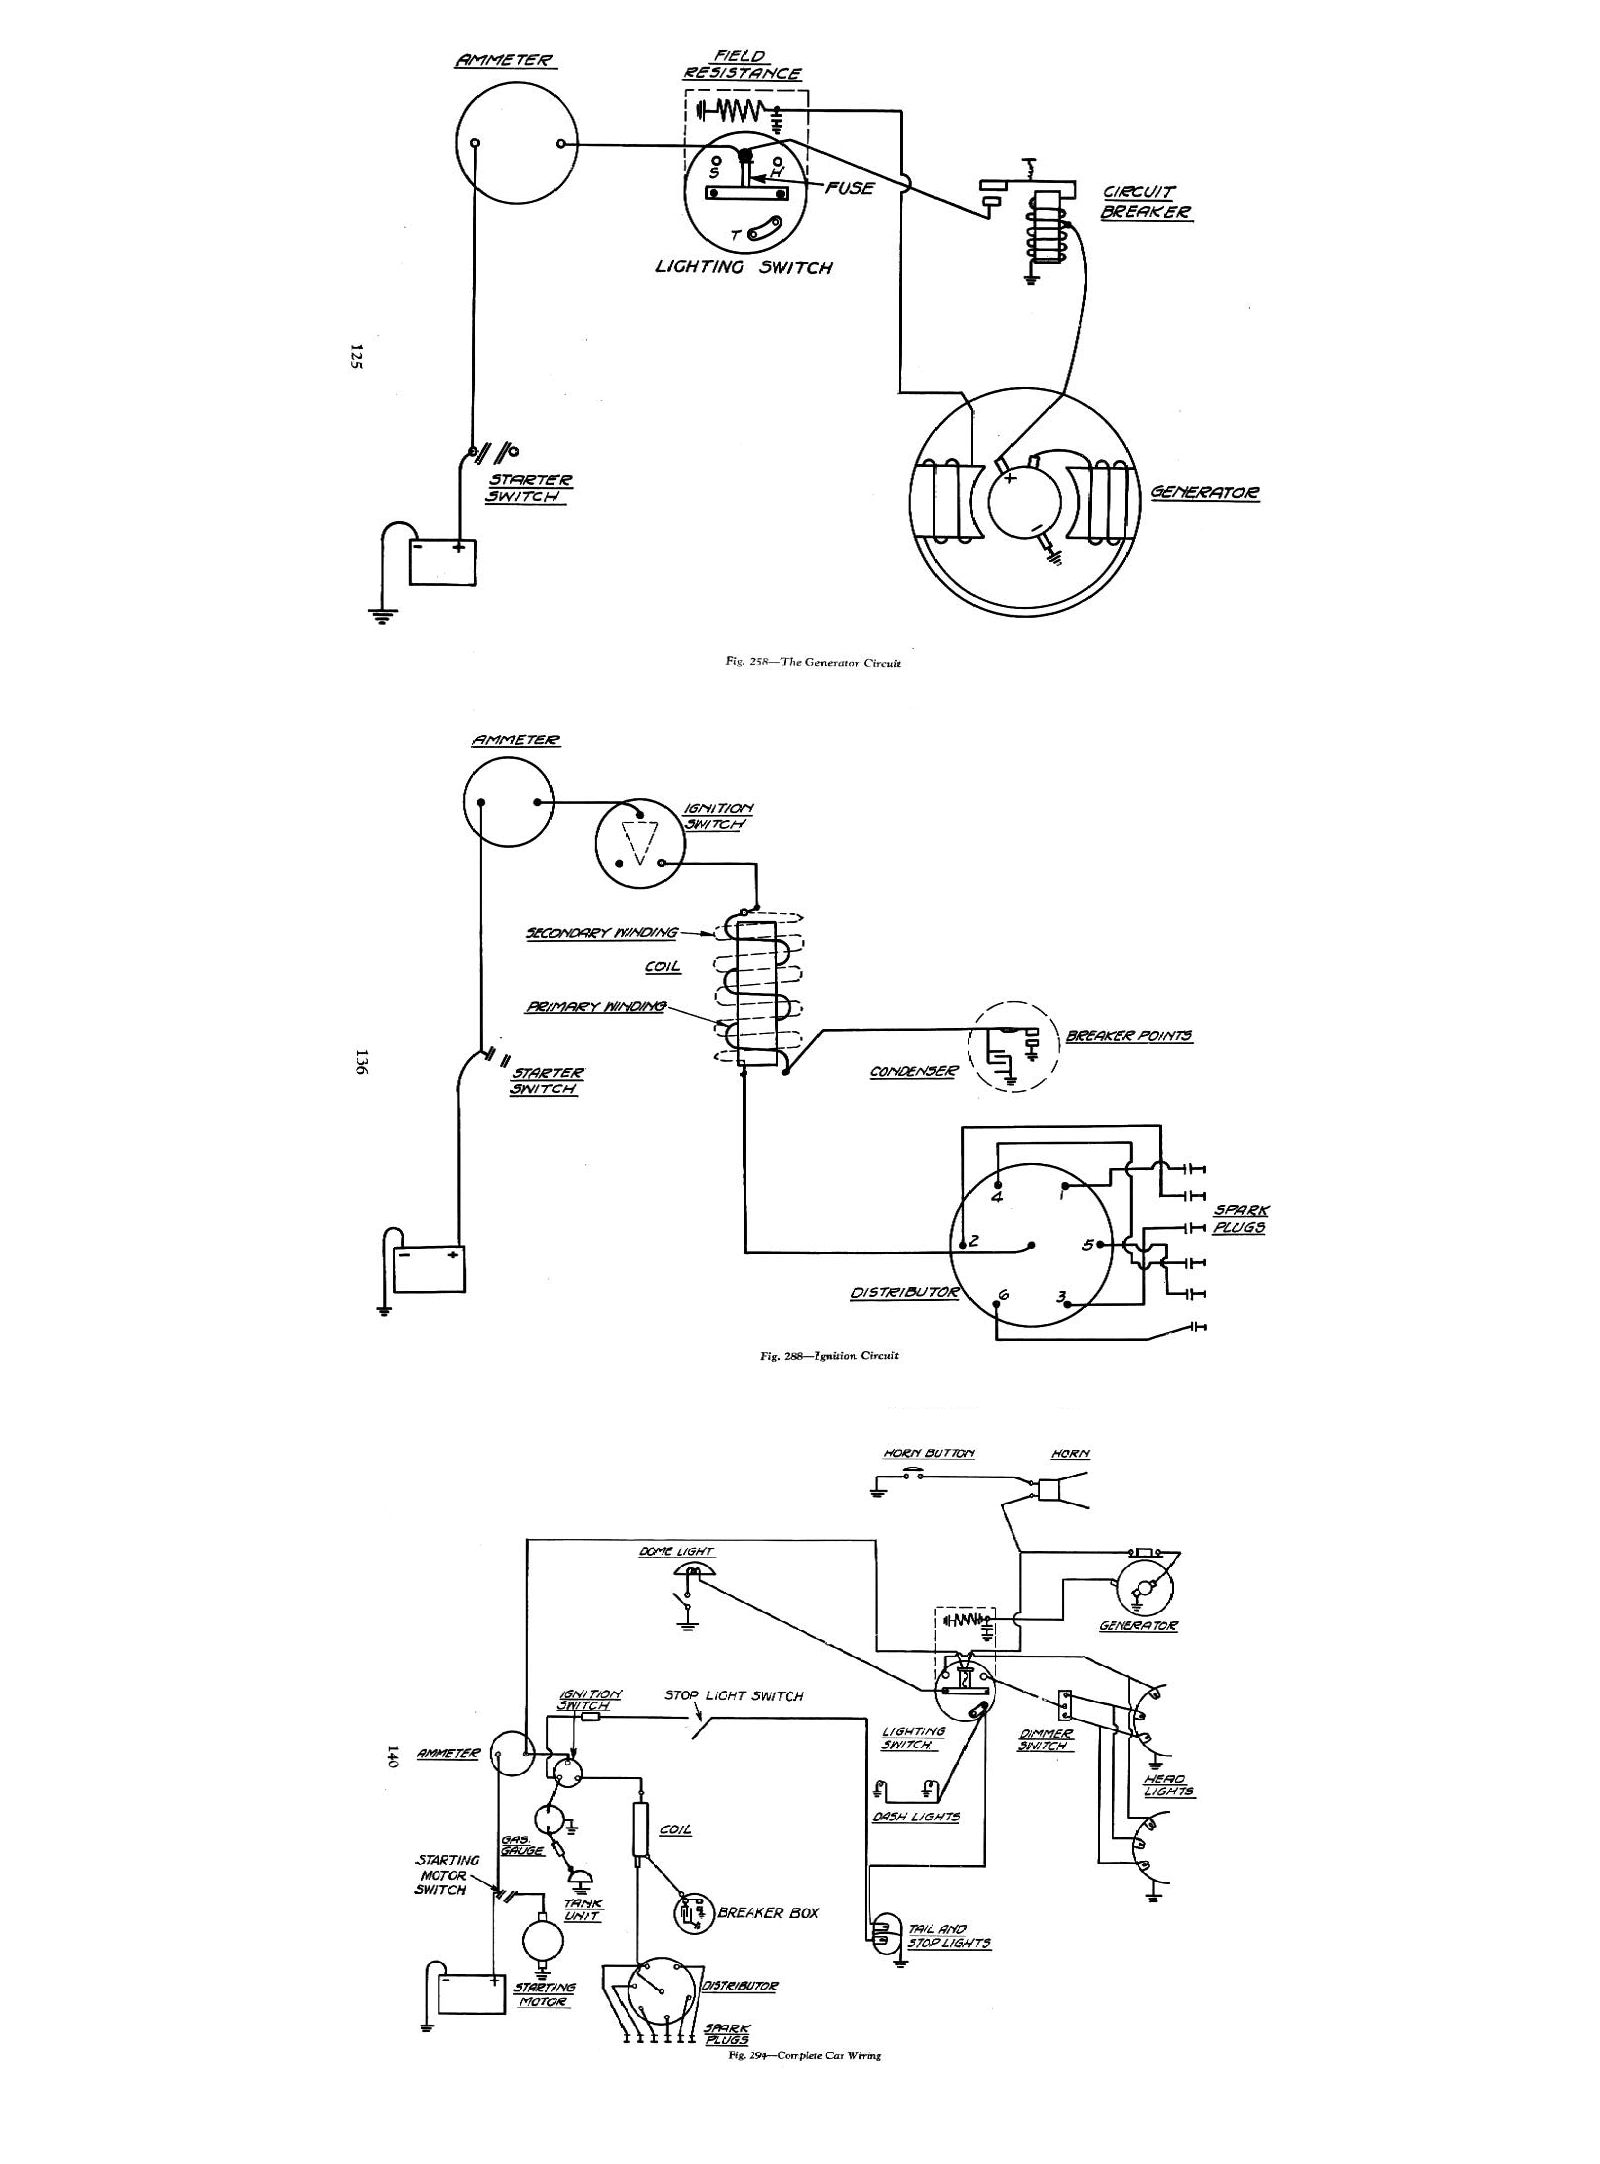 1956 Ford Fairlane Generator Wiring Diagram